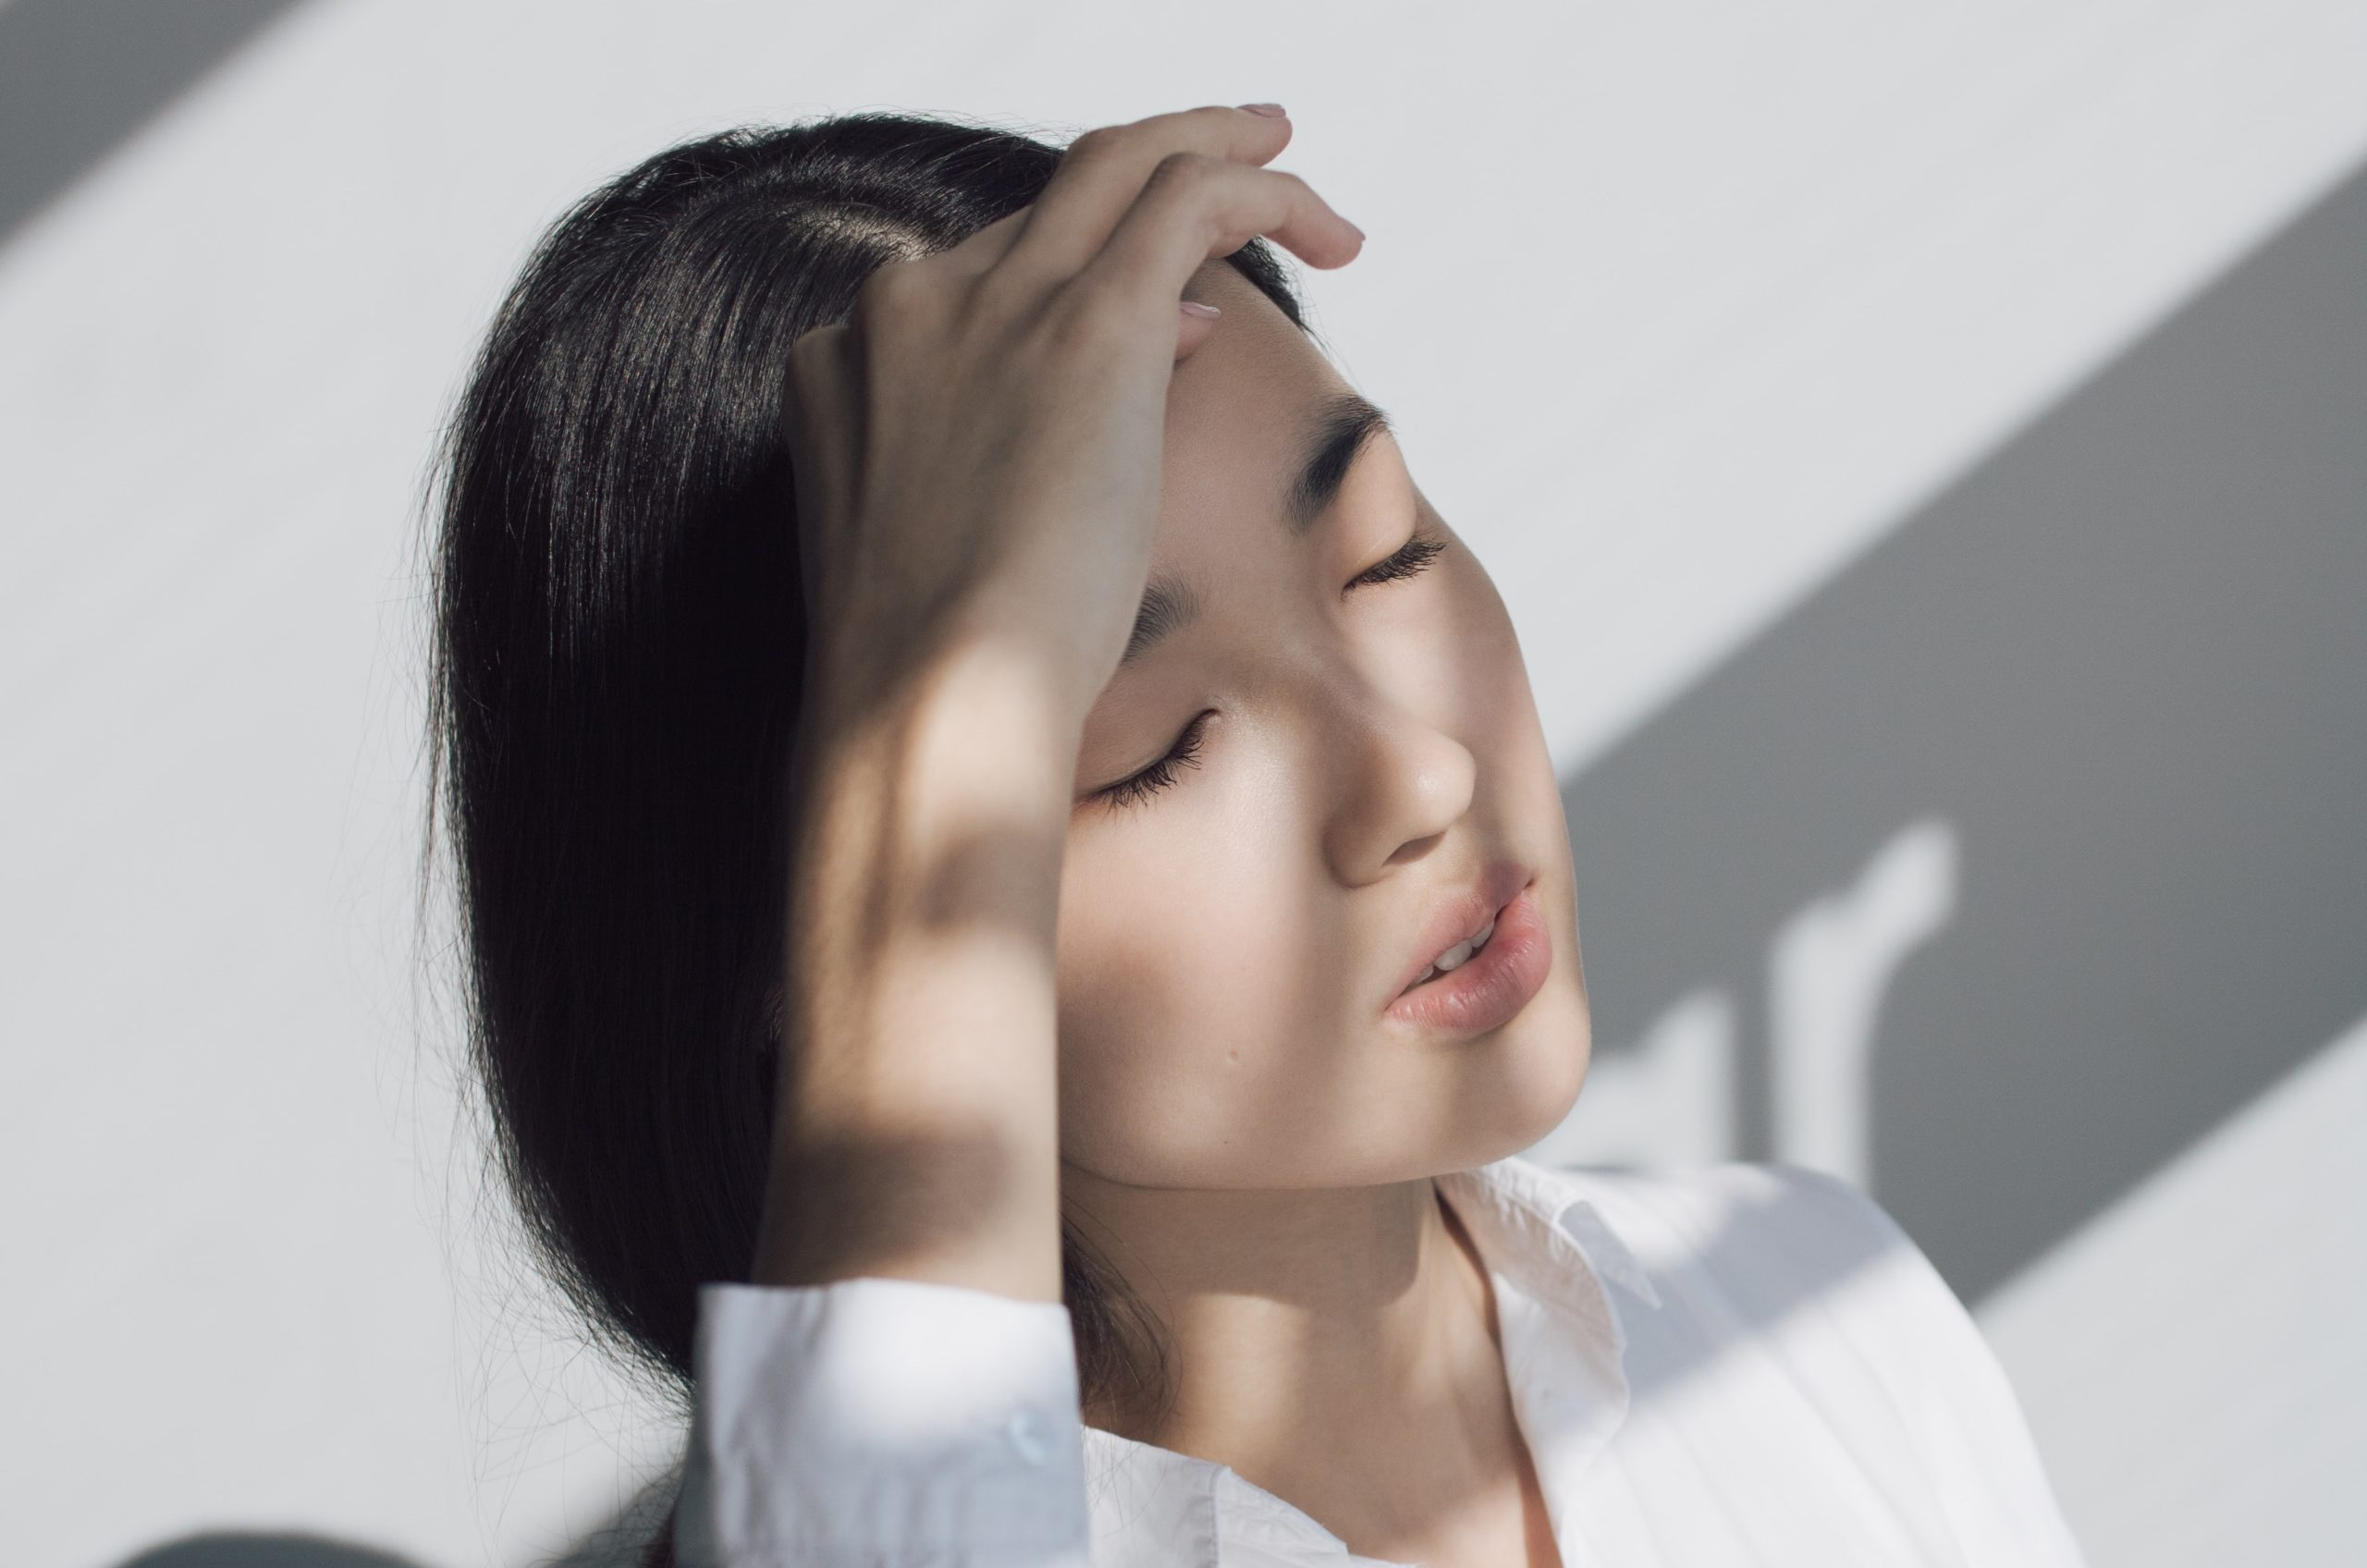 A Korean girl in a white shirt with her eyes closed and her hand by her forehead